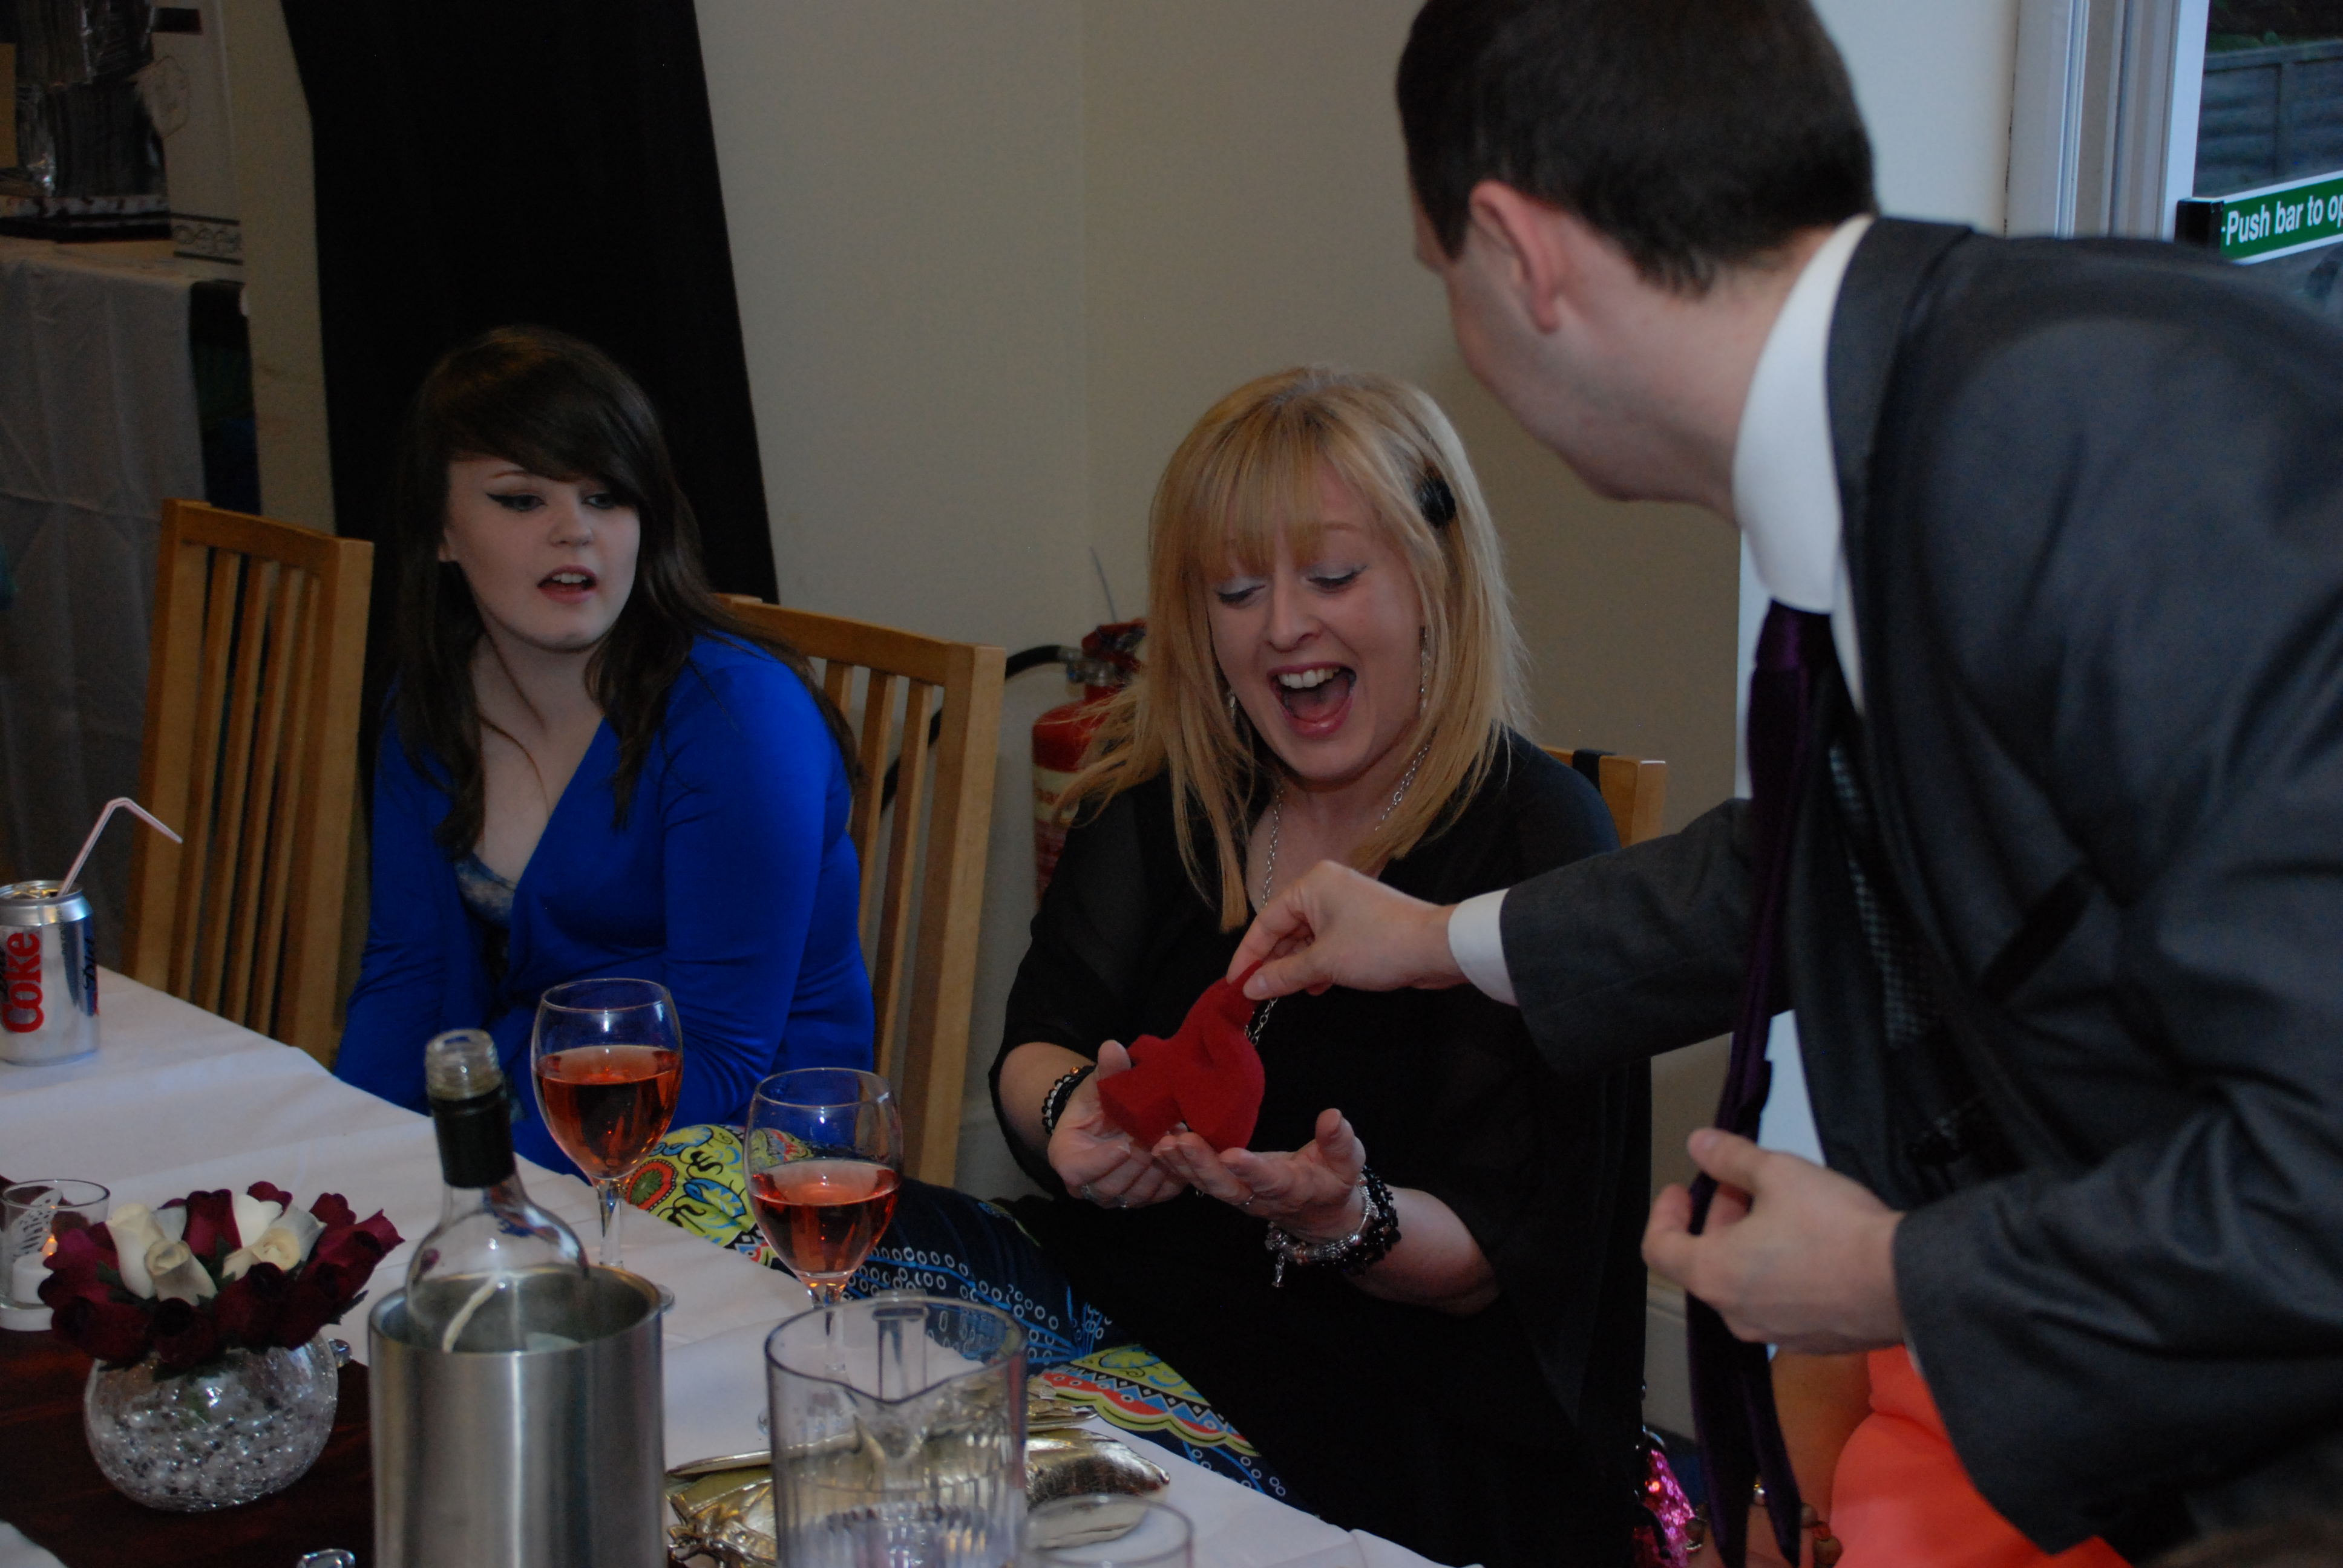 Ayrshire Magician Steven Blair performing close-up magic for a group at an event either a Wedding or Party.